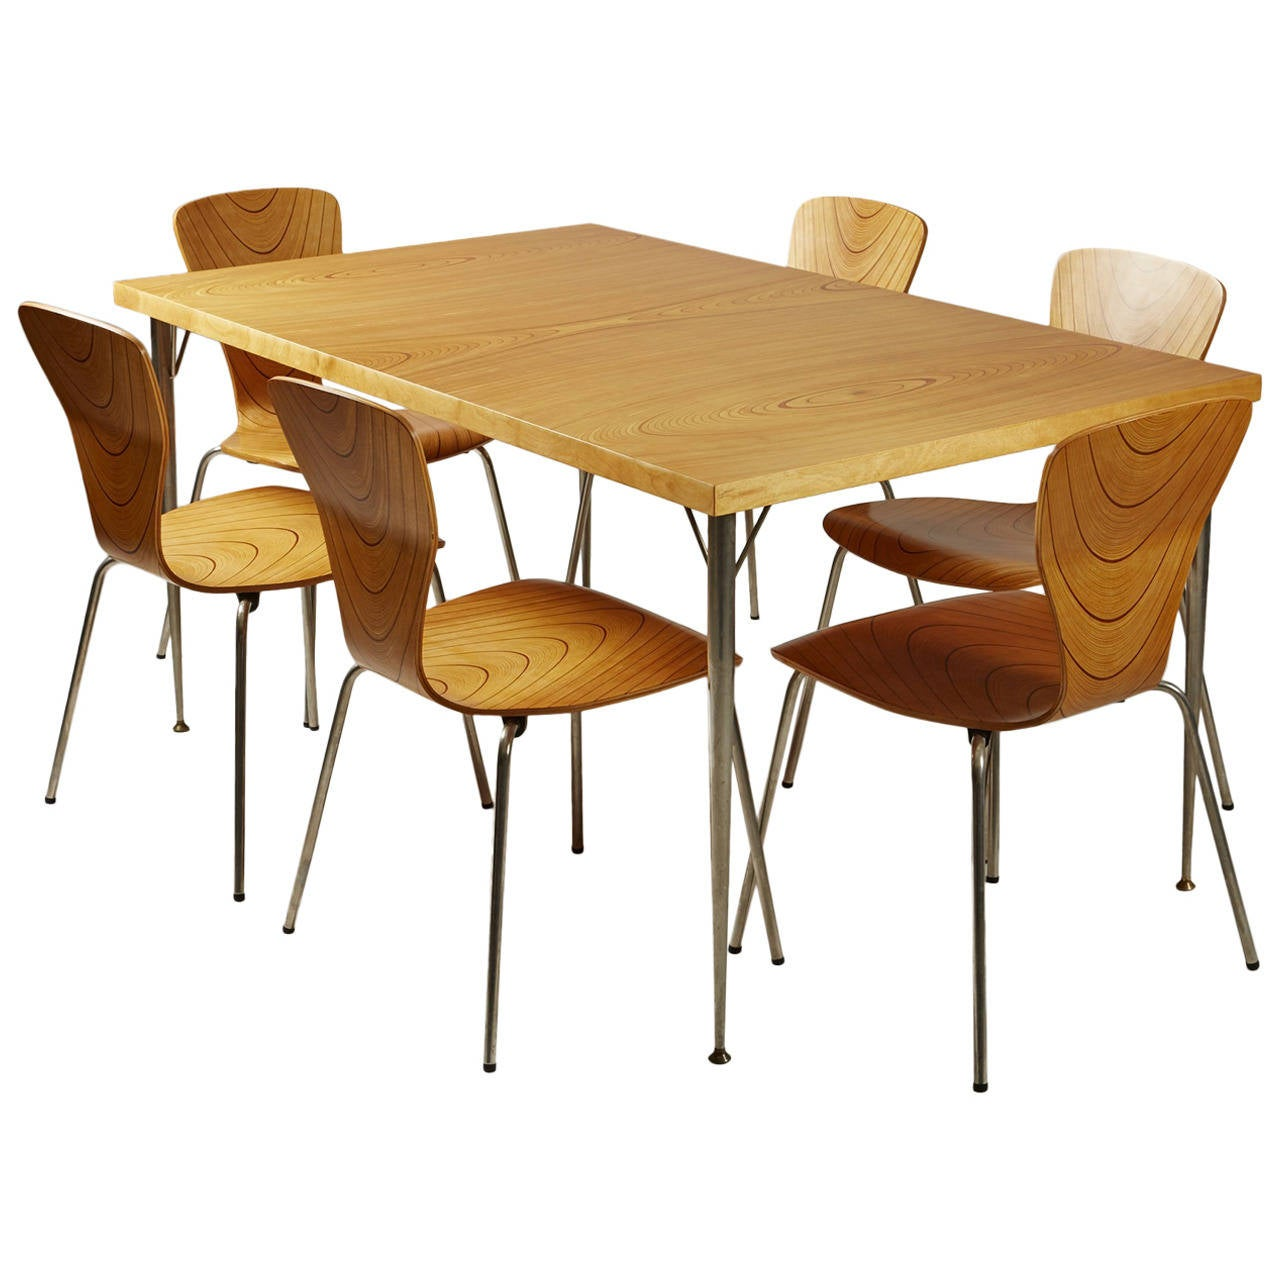 Dining set designed by tapio wirkkala for asko finland for Dining table dressing ideas